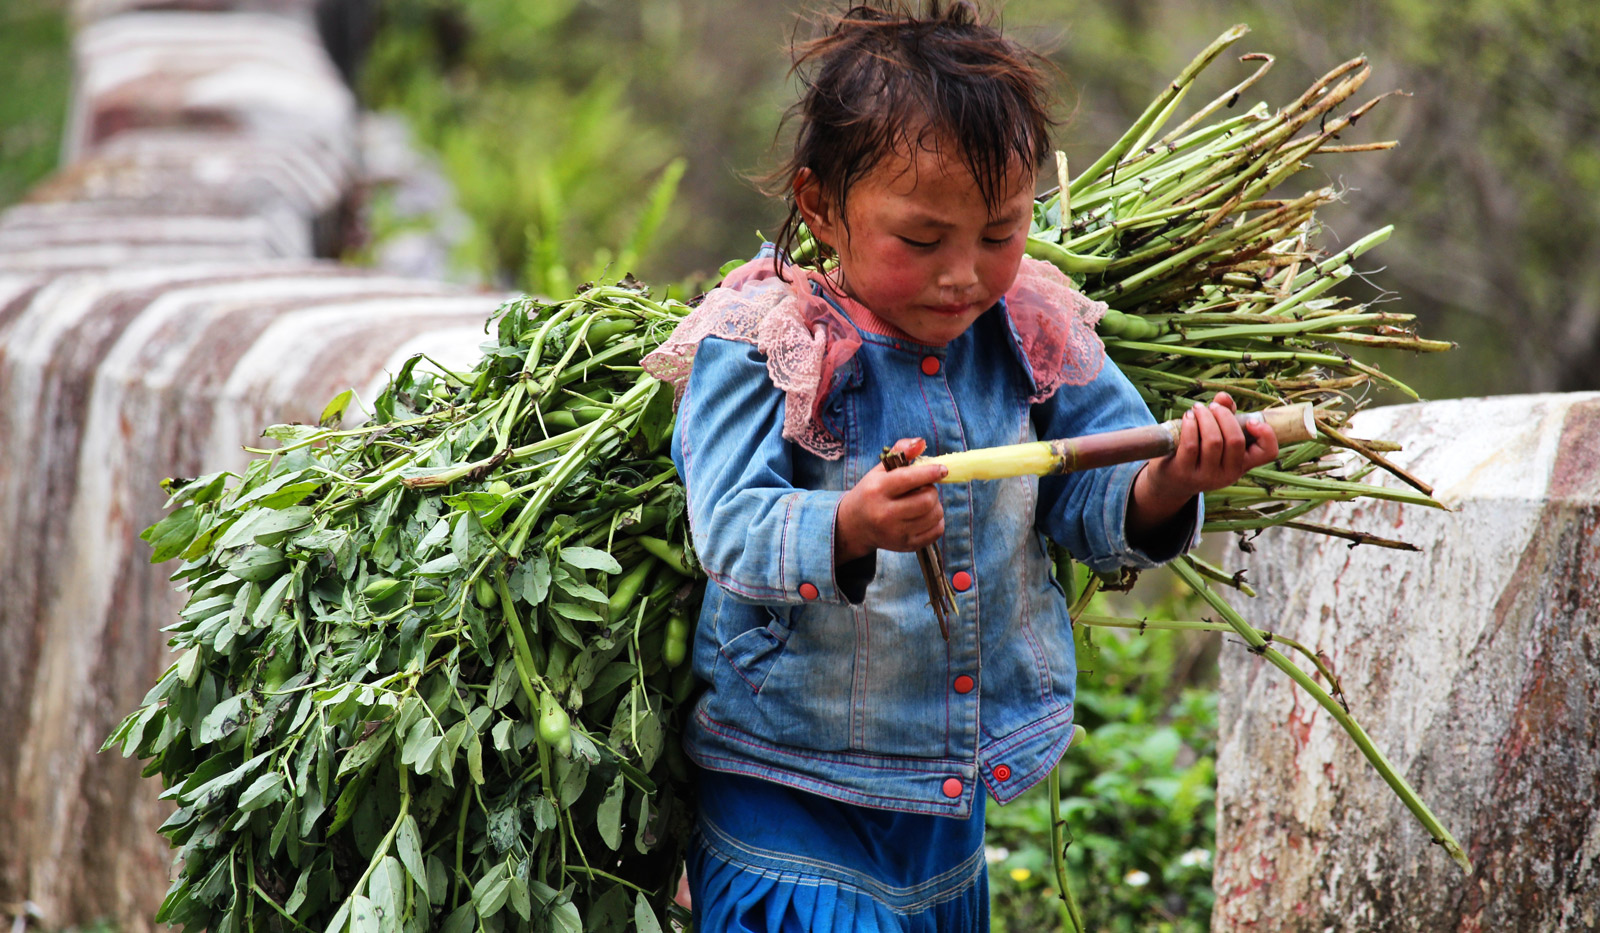 little girl is eating a stick of bamboo while working